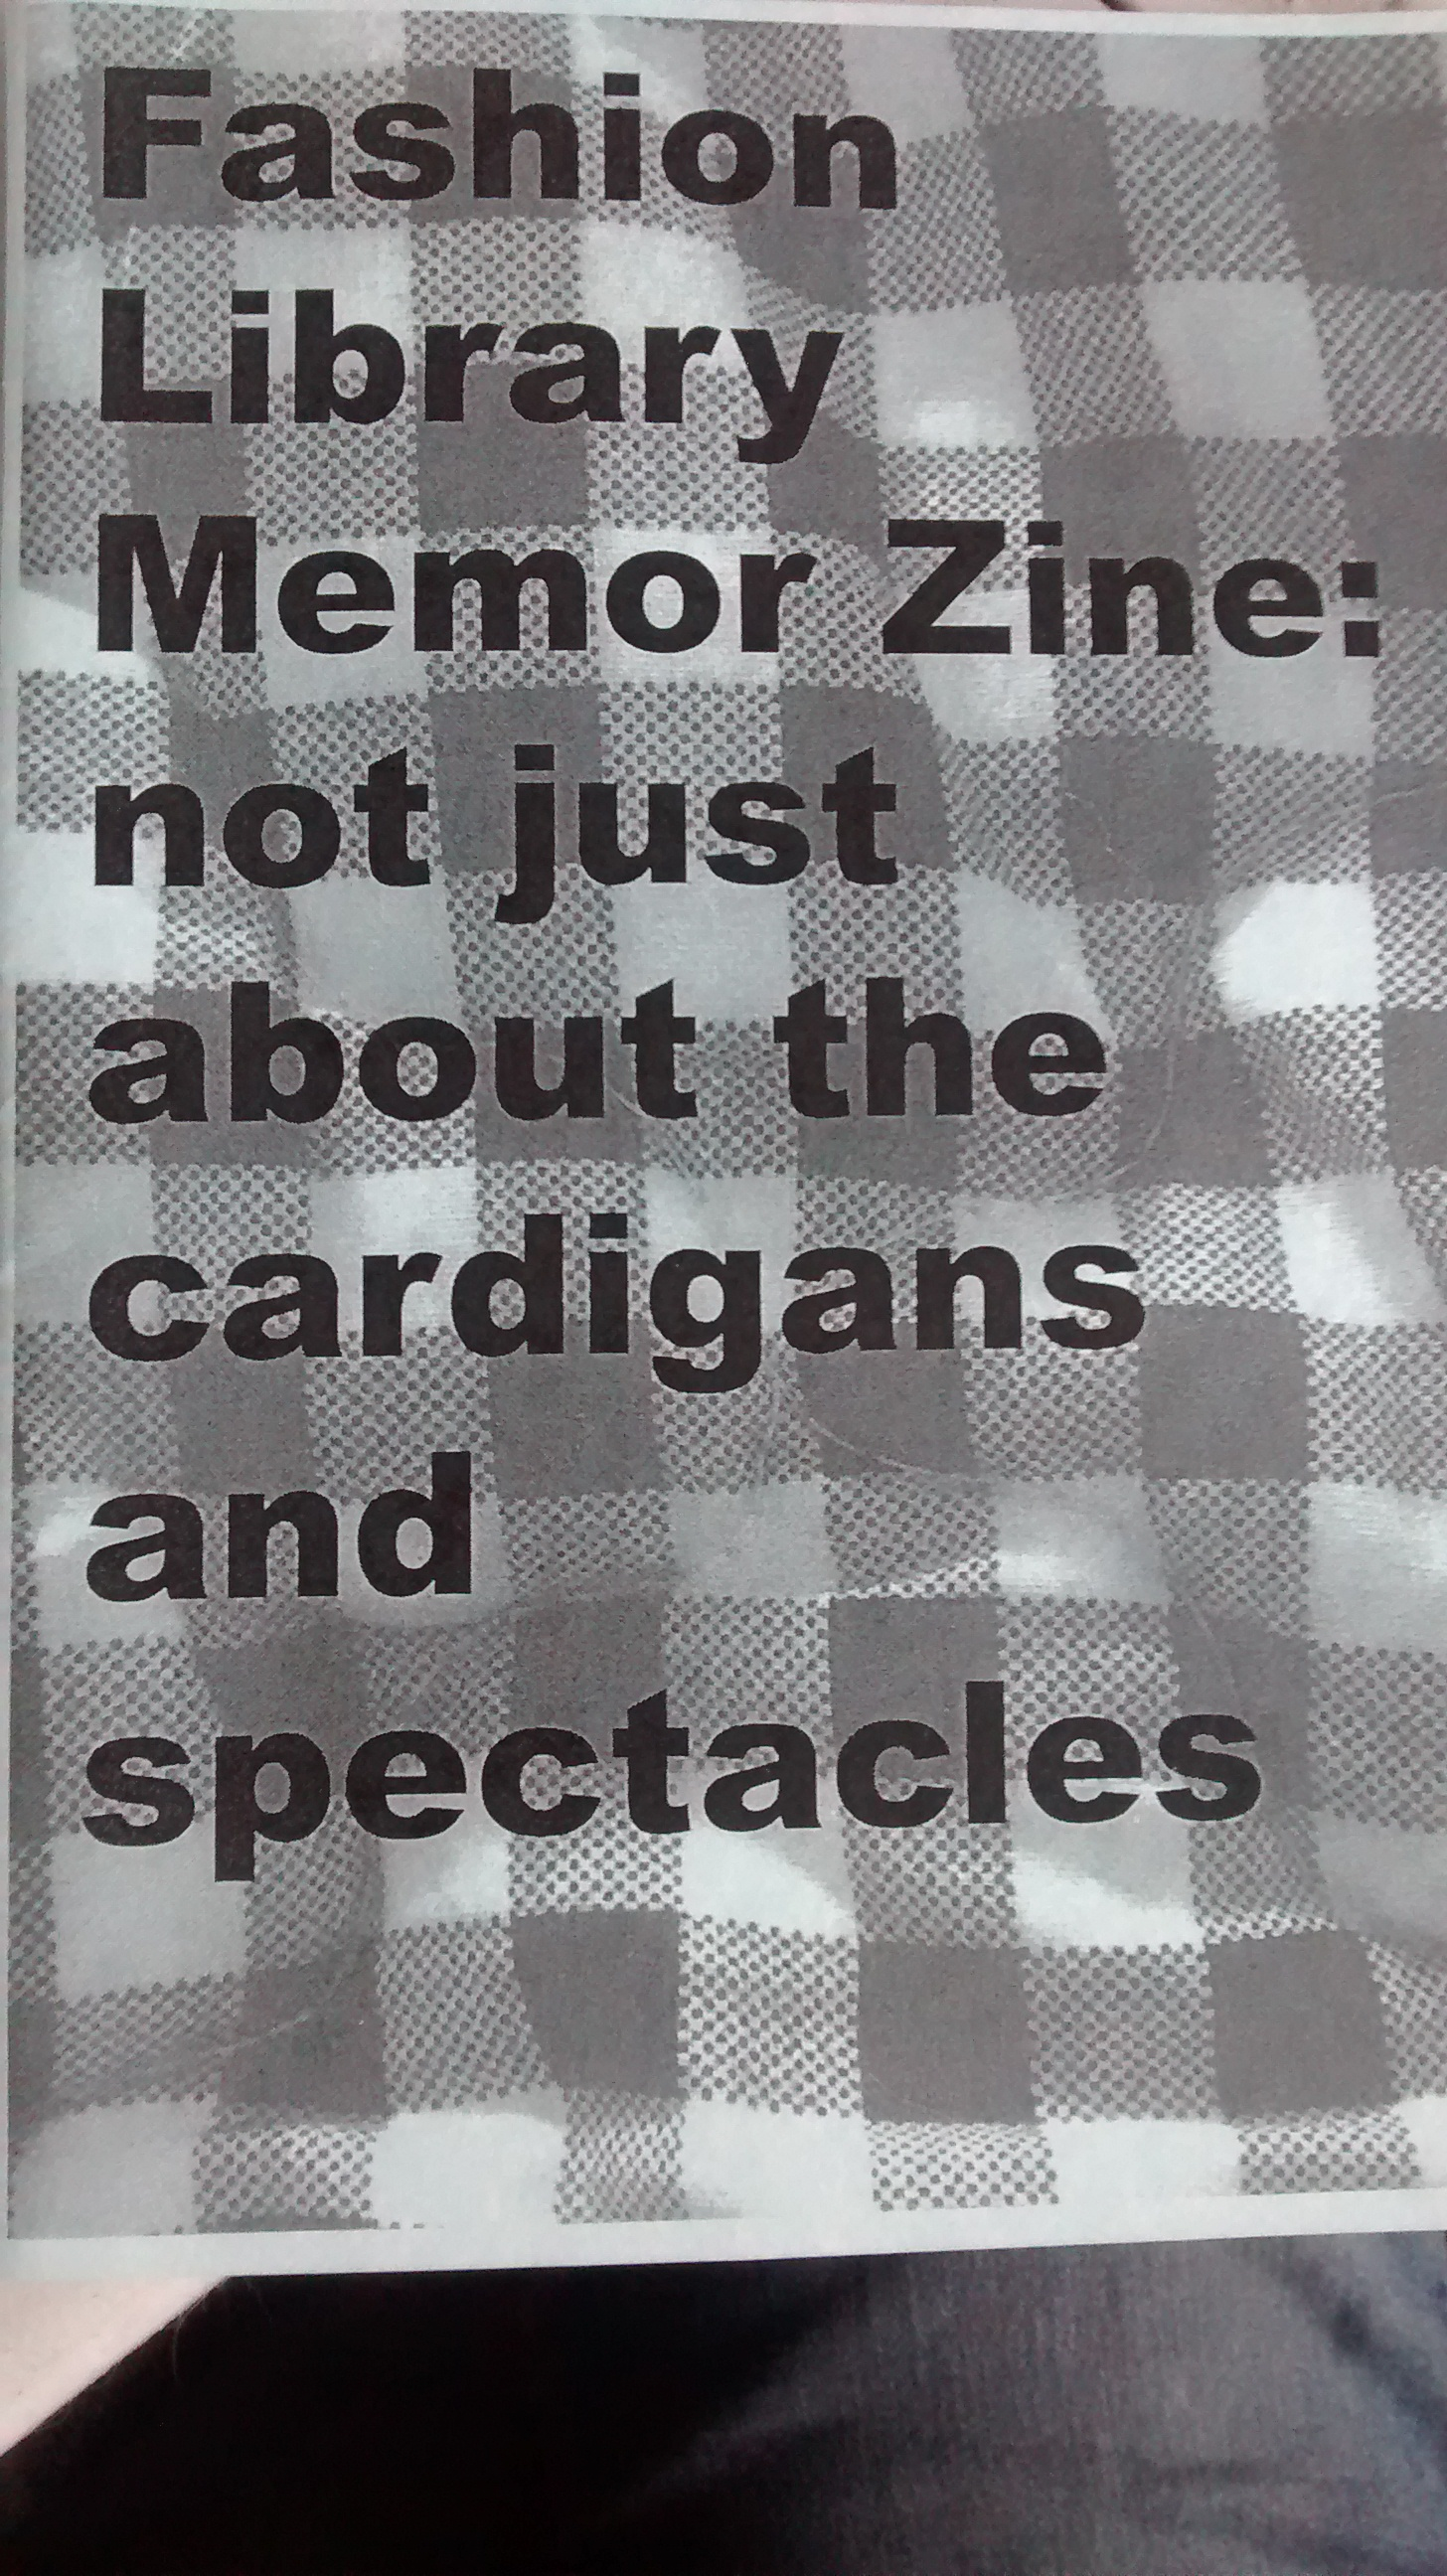 zine cover: Fashion Library Memor Zine